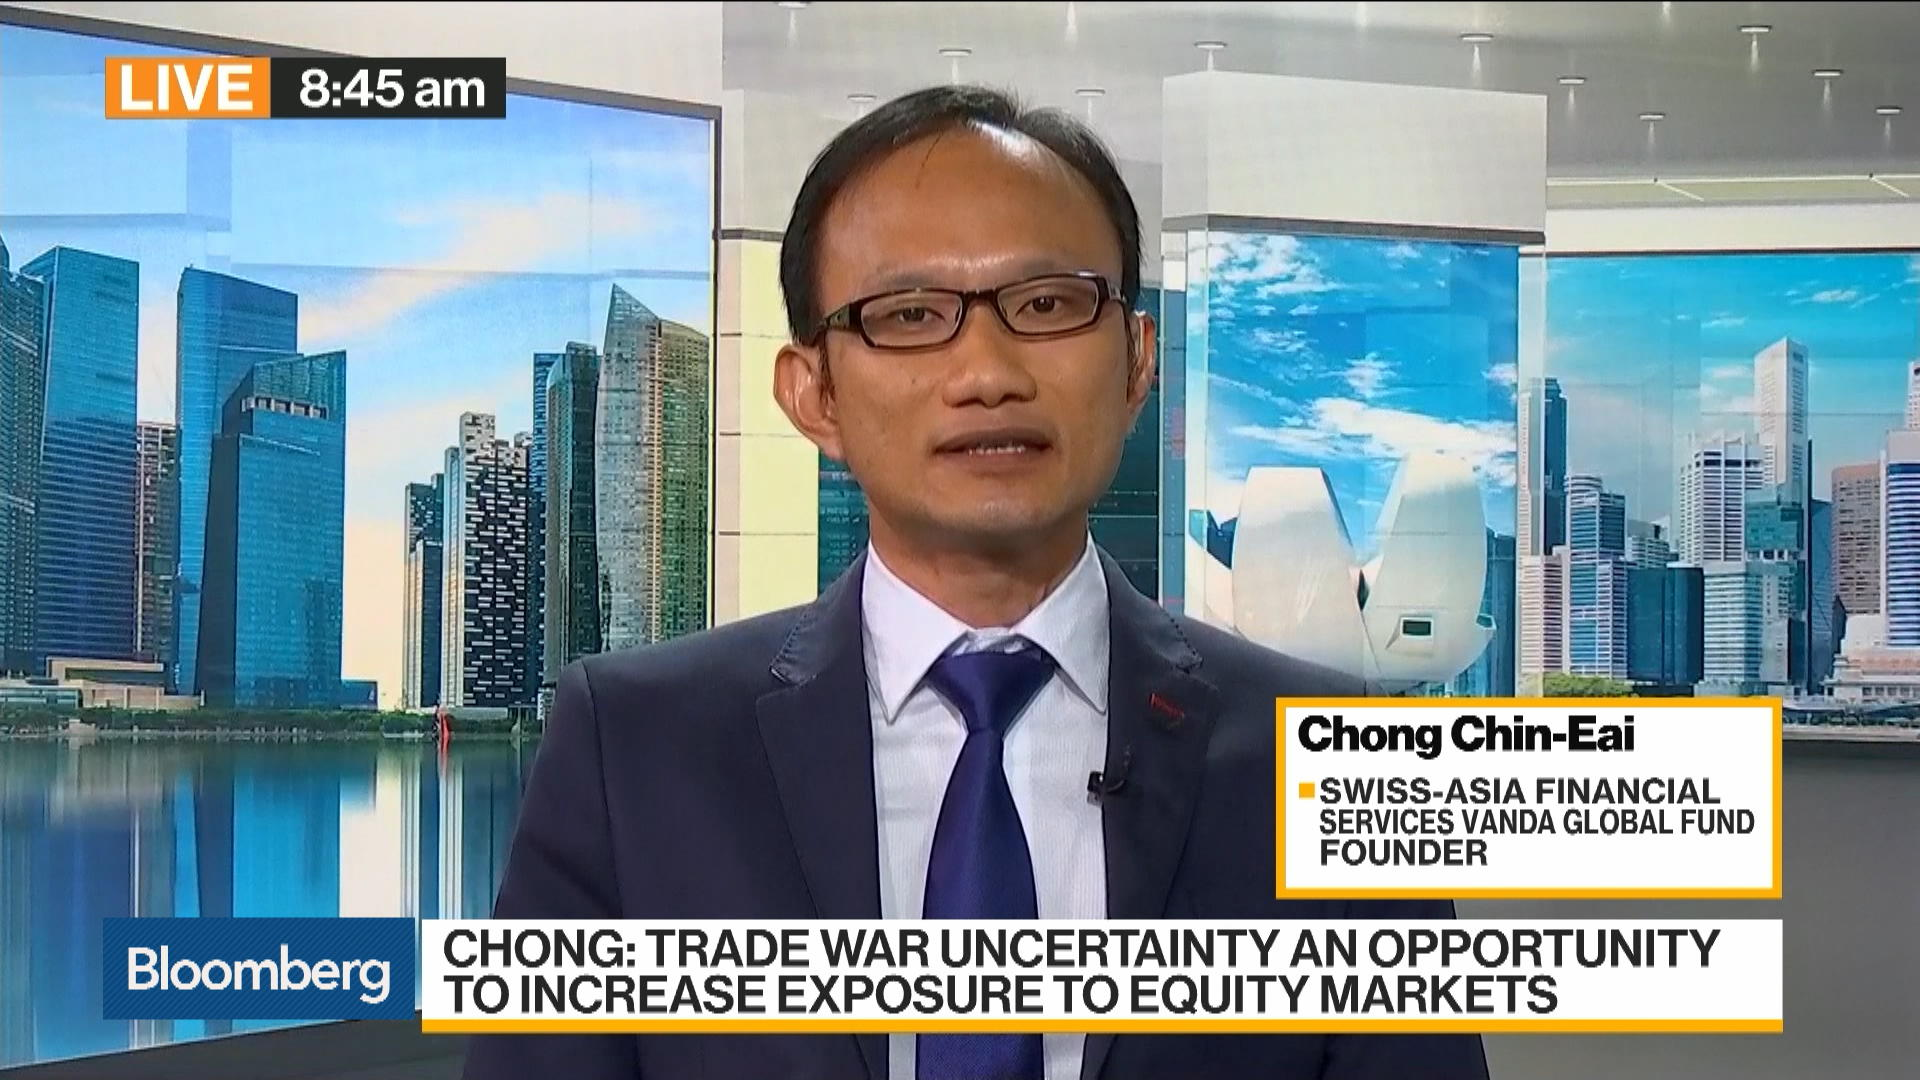 Chong Chin Eai, founder of Swiss-Asia Financial Services' Vanda Global Fund, on Investment Strategy.